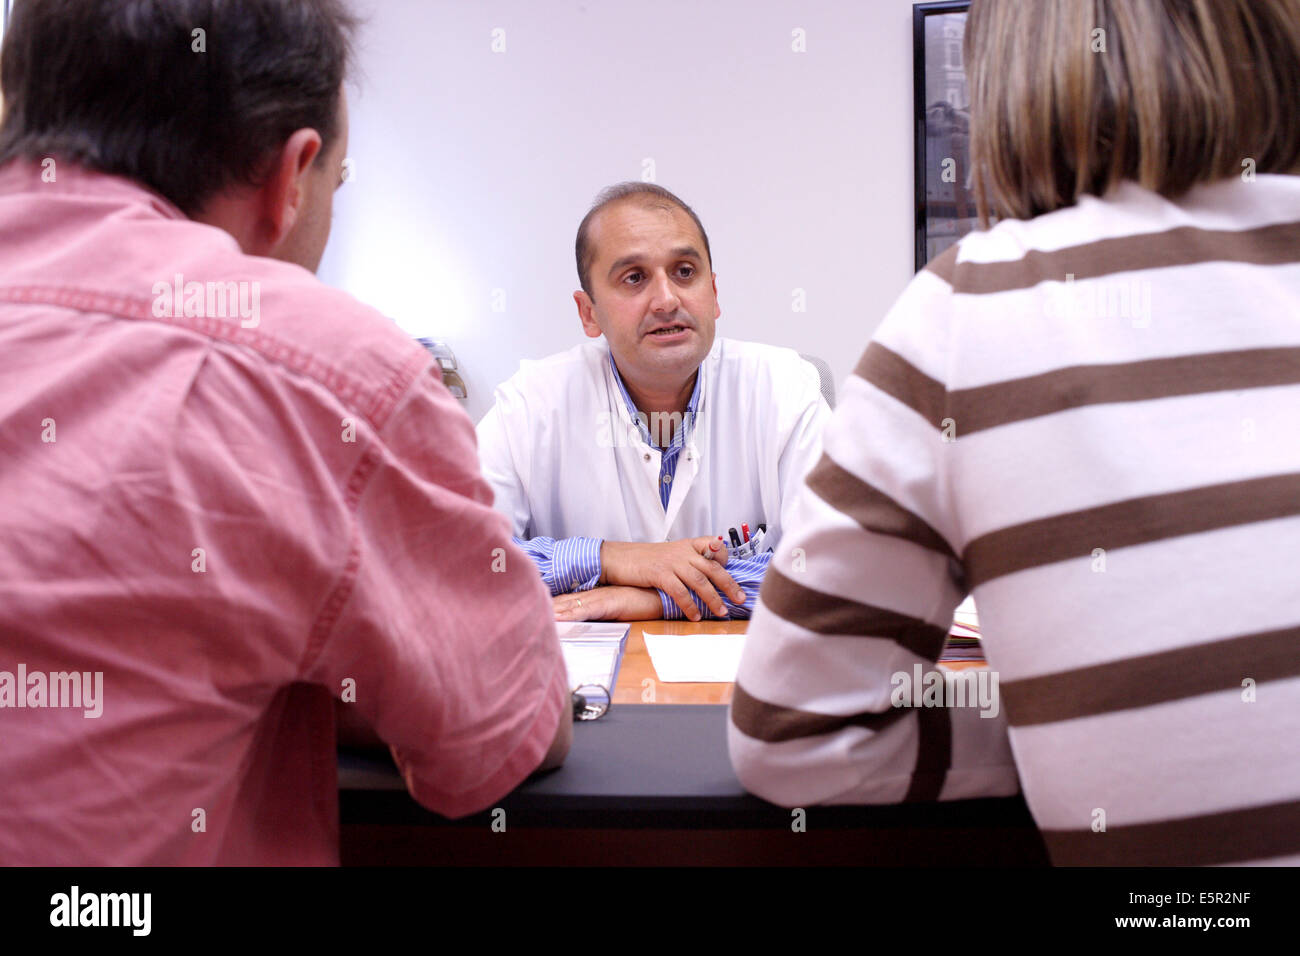 Couple in medical consultation for problems of sterility, Limoges hospital, France. - Stock Image